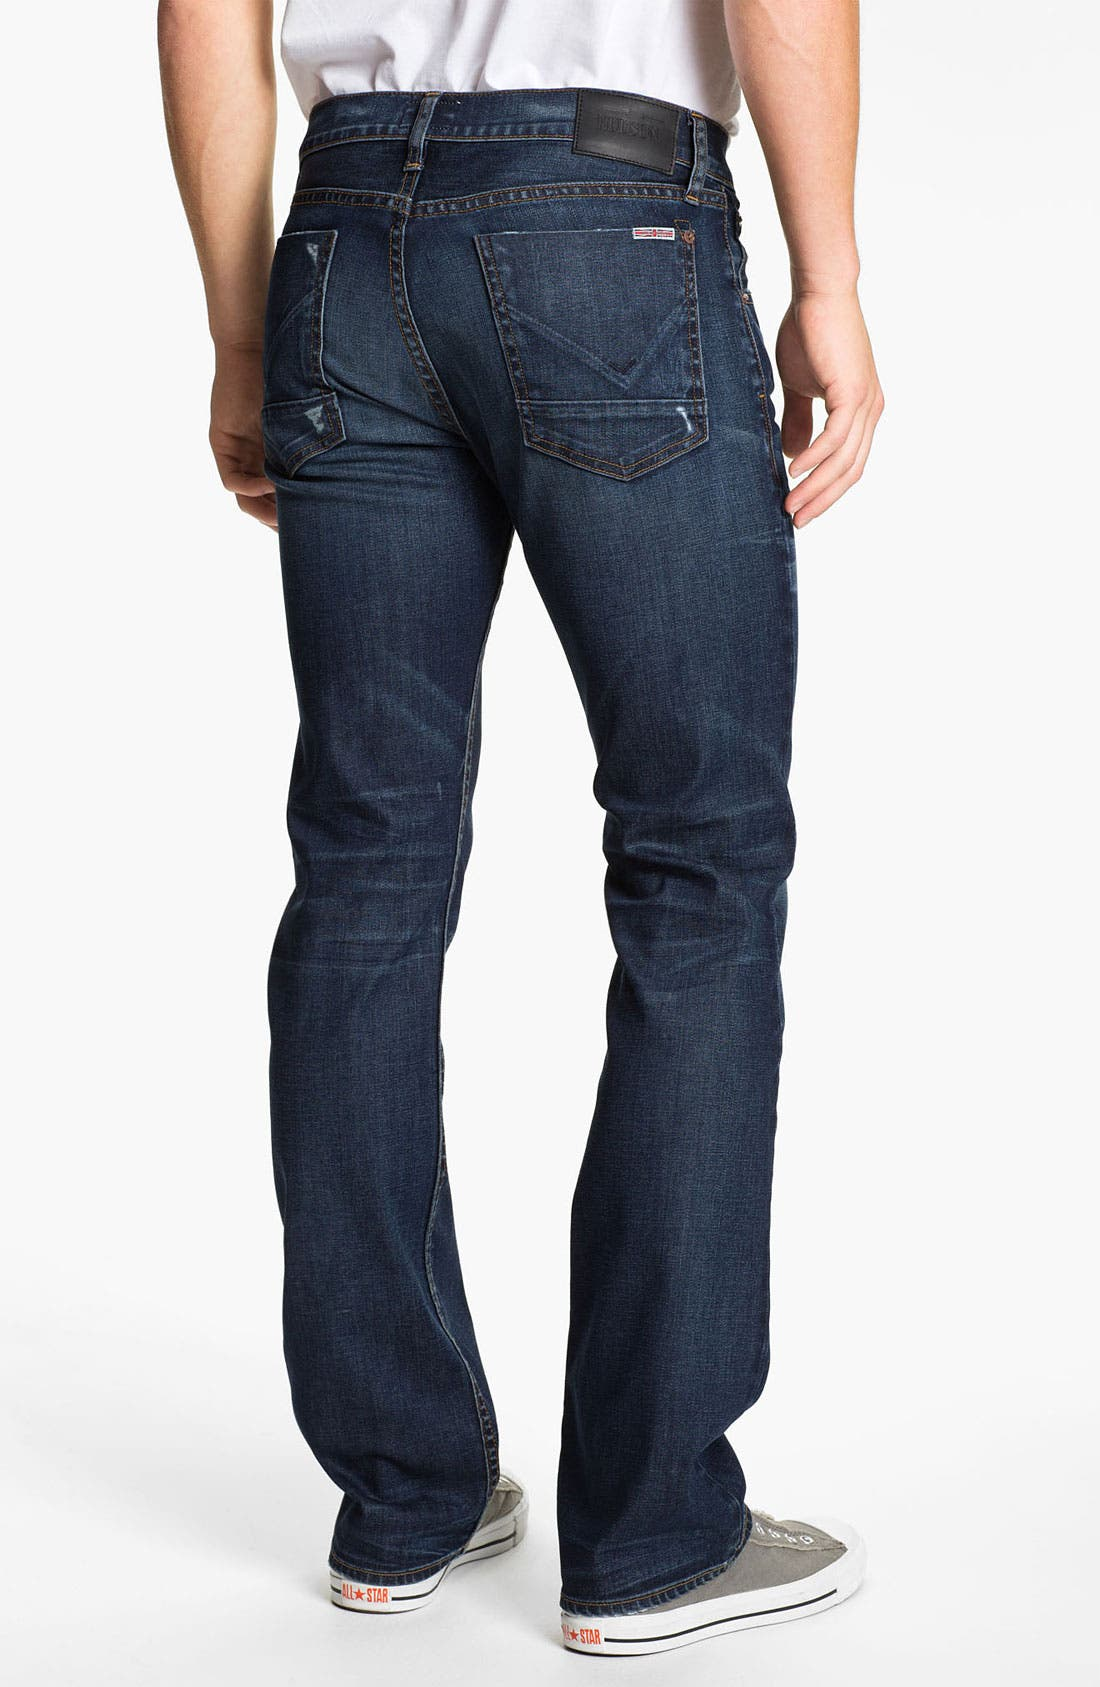 Alternate Image 1 Selected - Hudson Jeans 'Clifton' Bootcut Jeans (Revert)